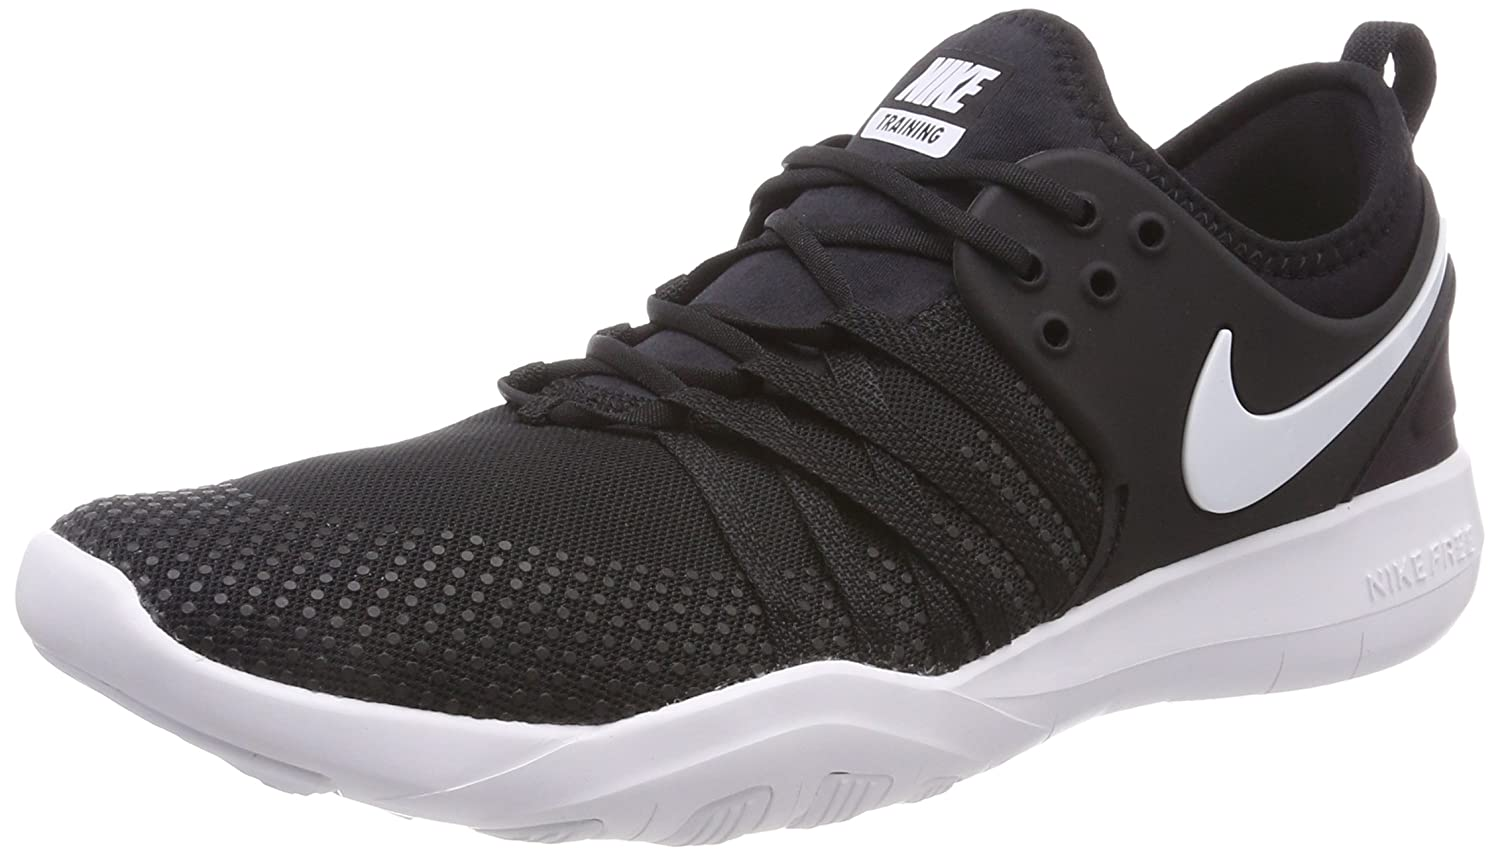 281e2d4ccd0 Nike Women s WMNS Free Tr 7 Trainers